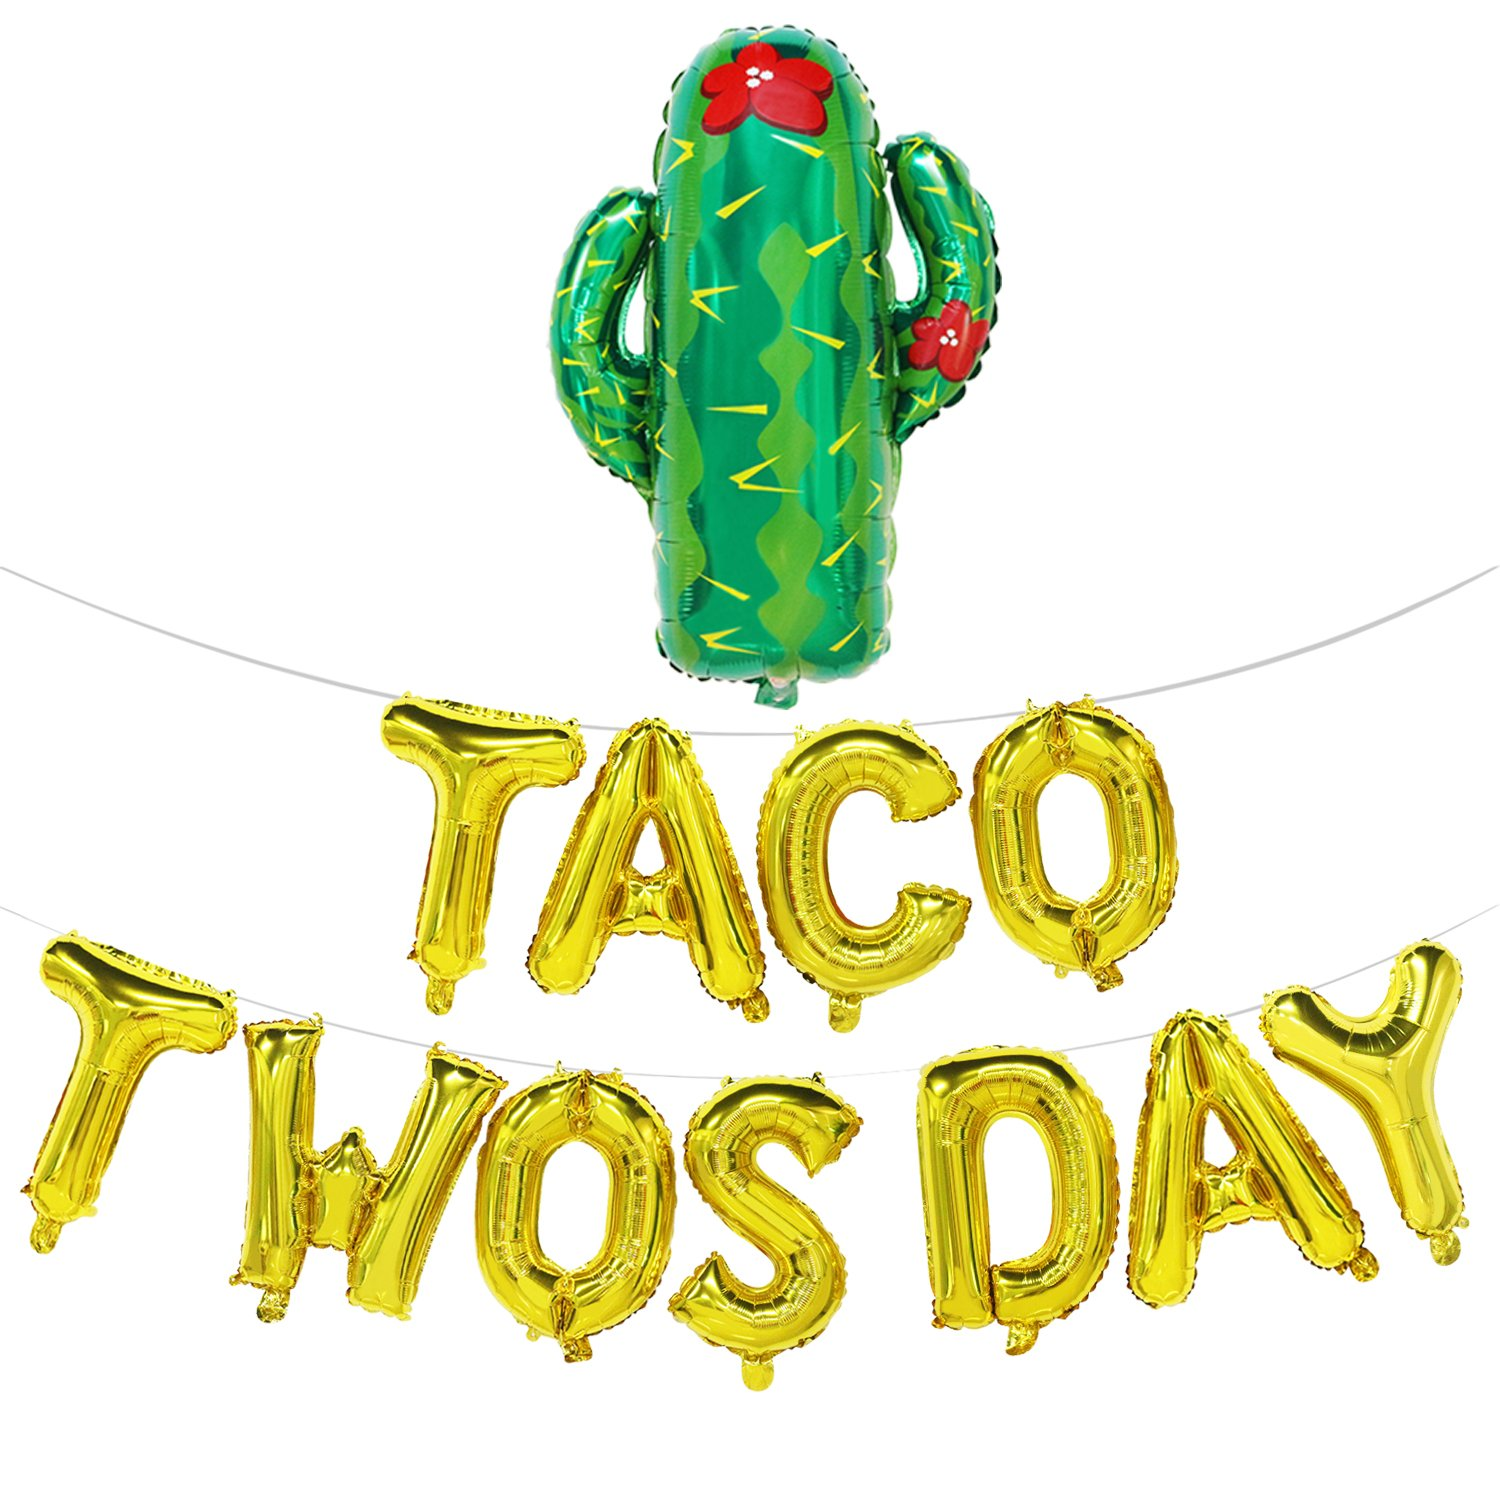 Taco TwosdayBalloons with Cactus | Taco Twosday Party Decorations | 2nd Birthday Decorations | Taco Twosday Banner Sign | Fiesta Theme Party Decorations | Gold, 16inch by Mosoan